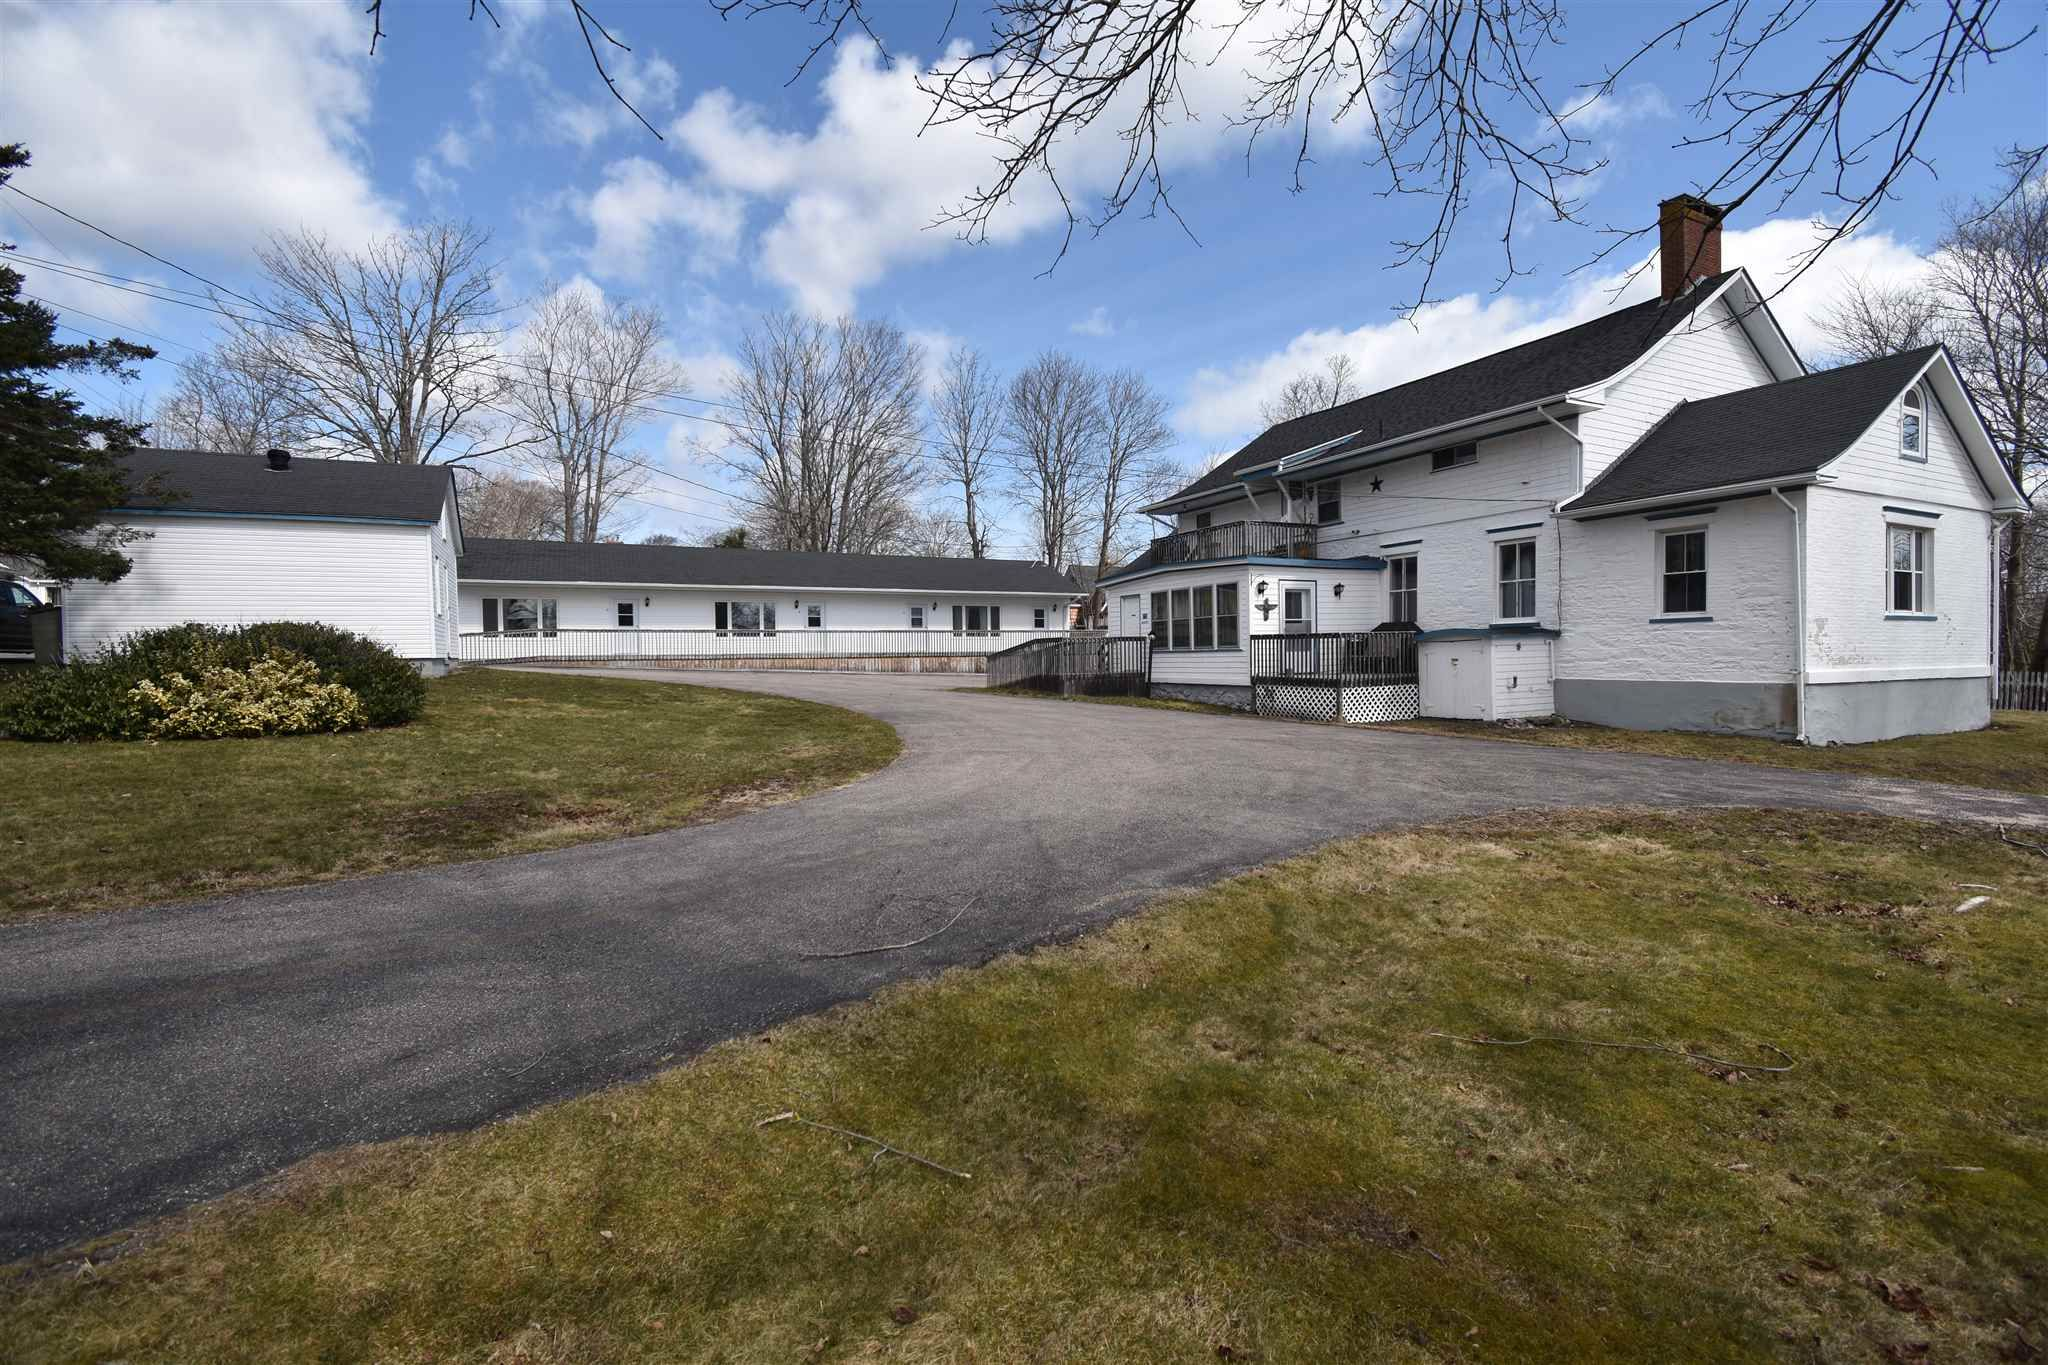 Main Photo: 77 QUEEN in Digby: 401-Digby County Multi-Family for sale (Annapolis Valley)  : MLS®# 202107430